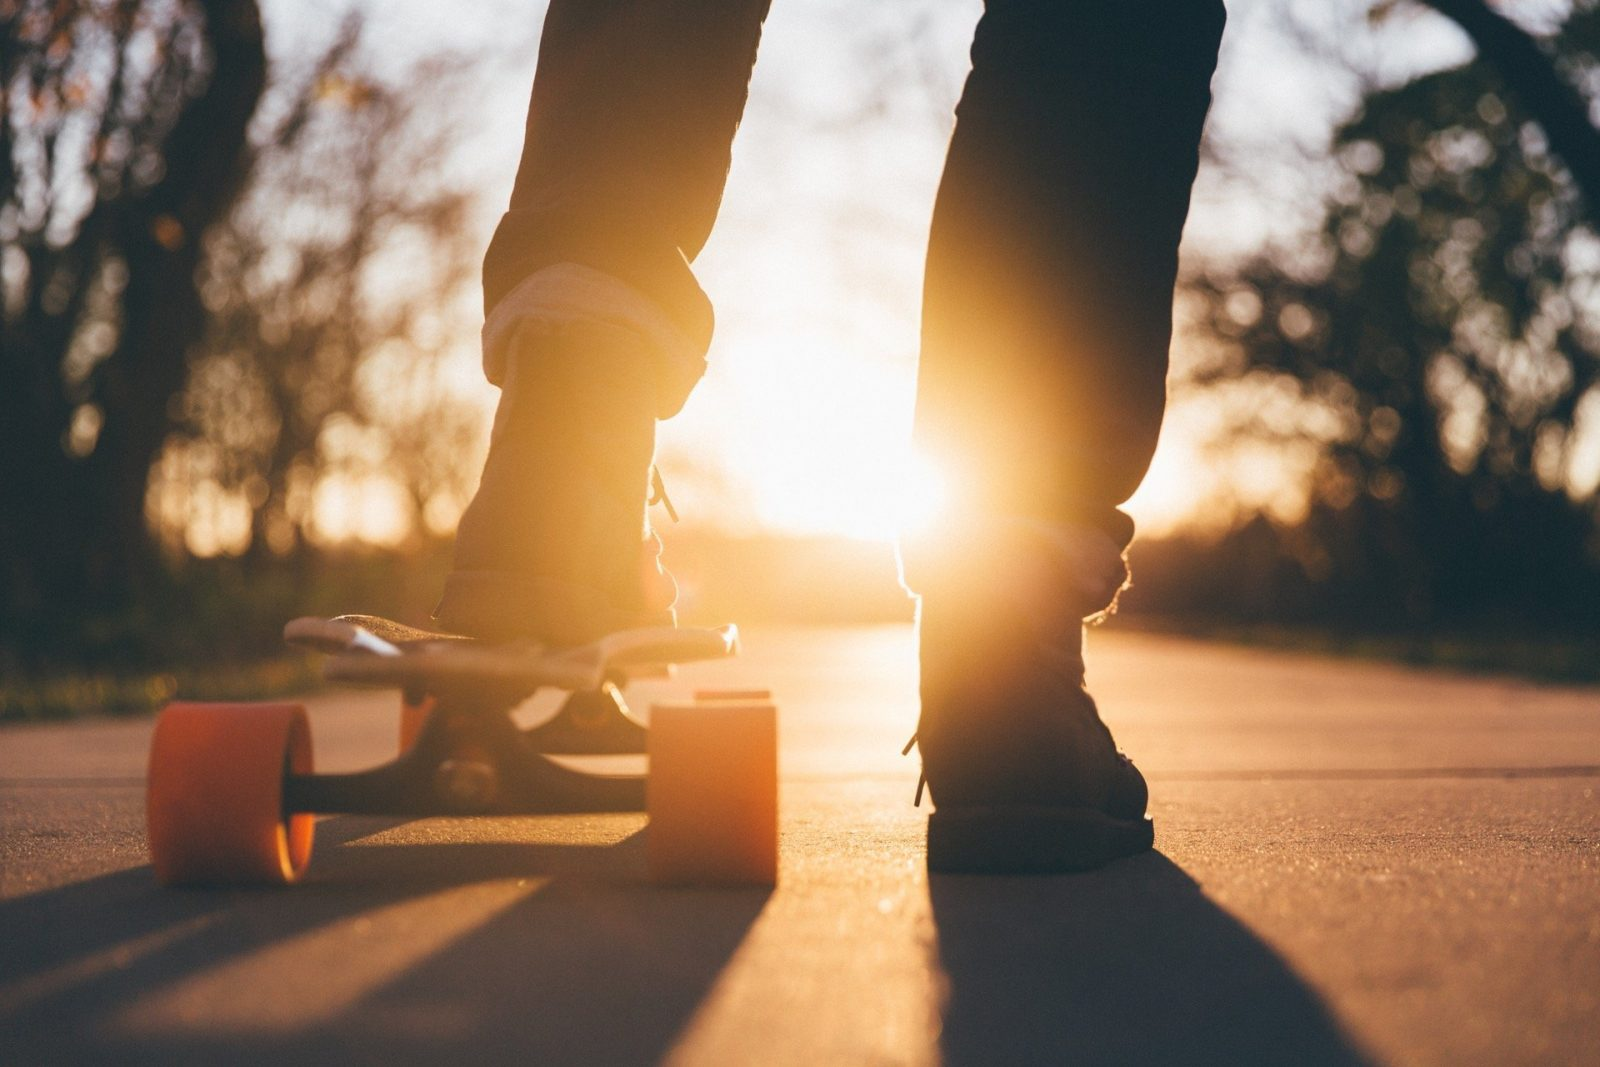 I was a skater before it was cool to be a skater that skates